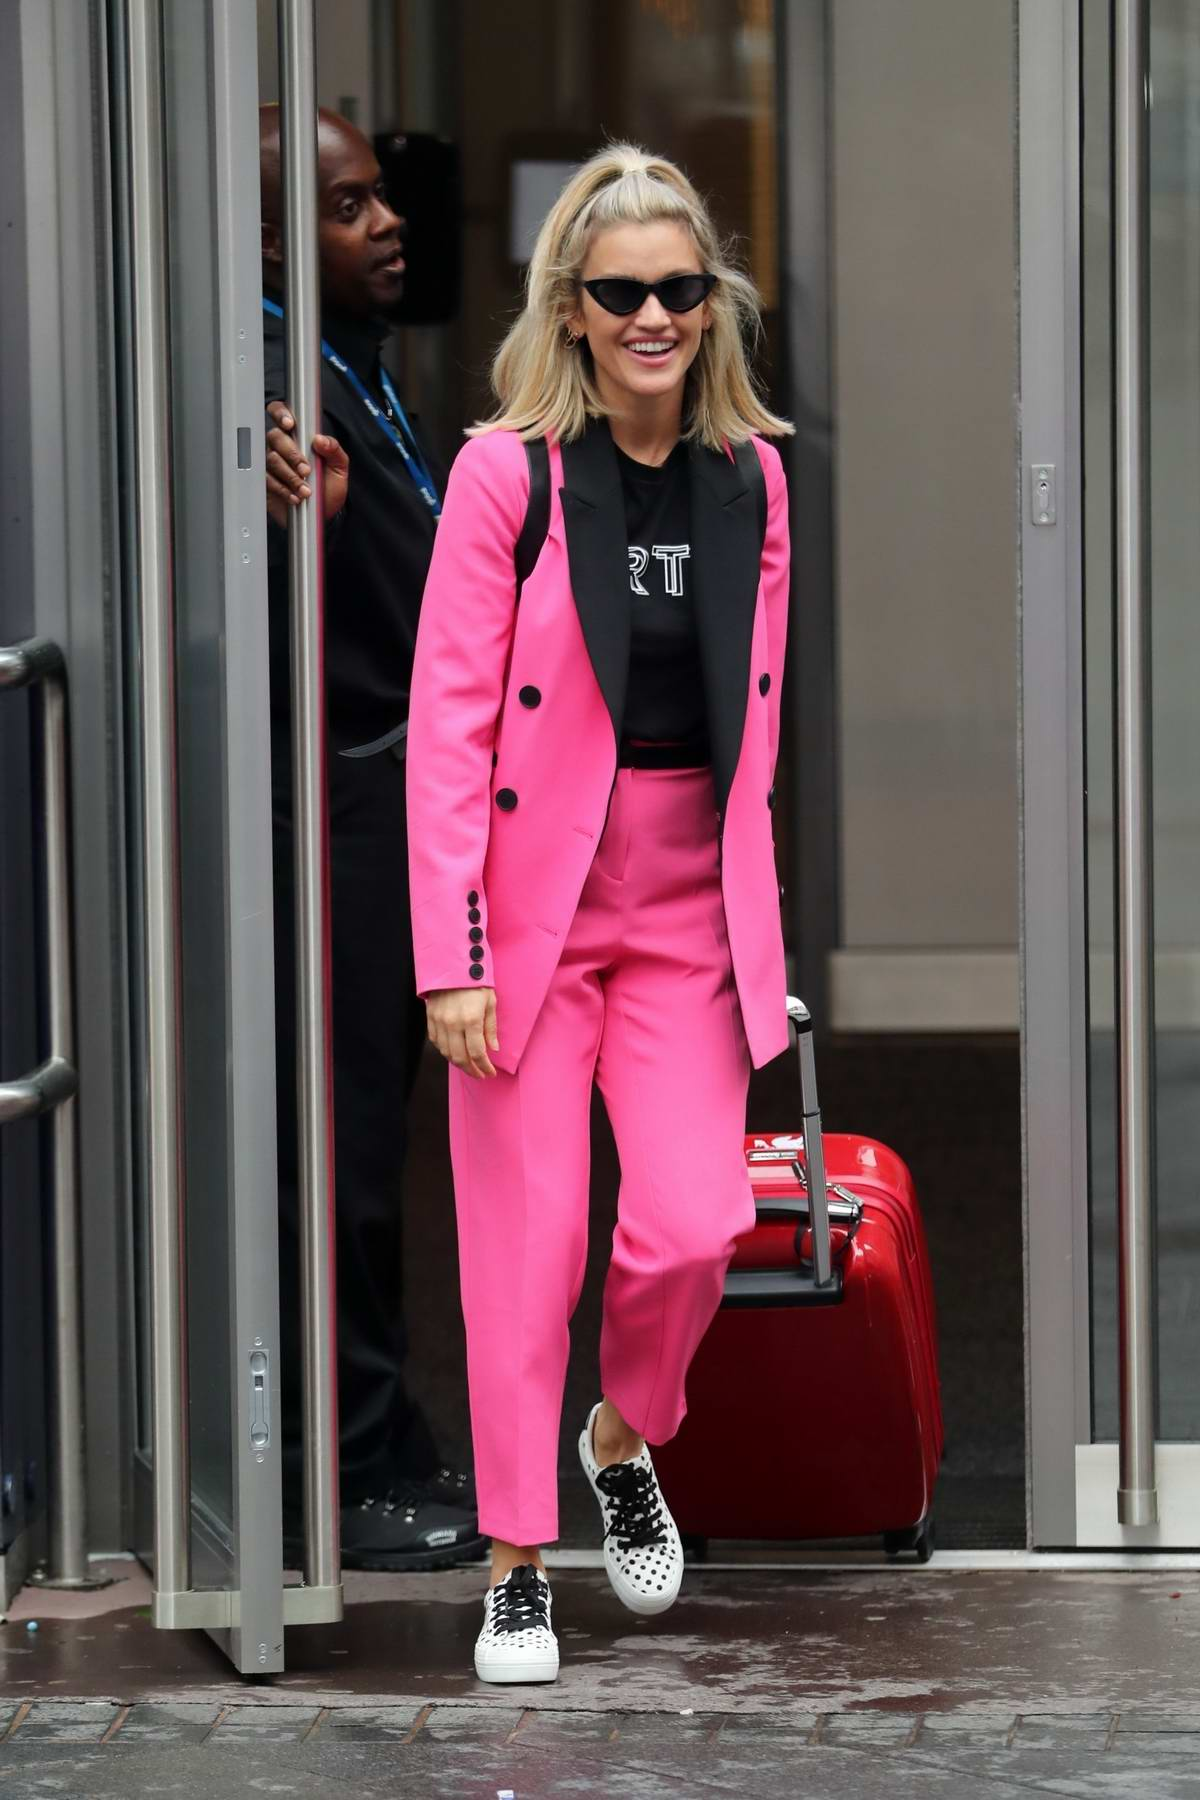 Ashley Roberts pops in bubble gum pink suit as she leaves Heart radio in London, UK